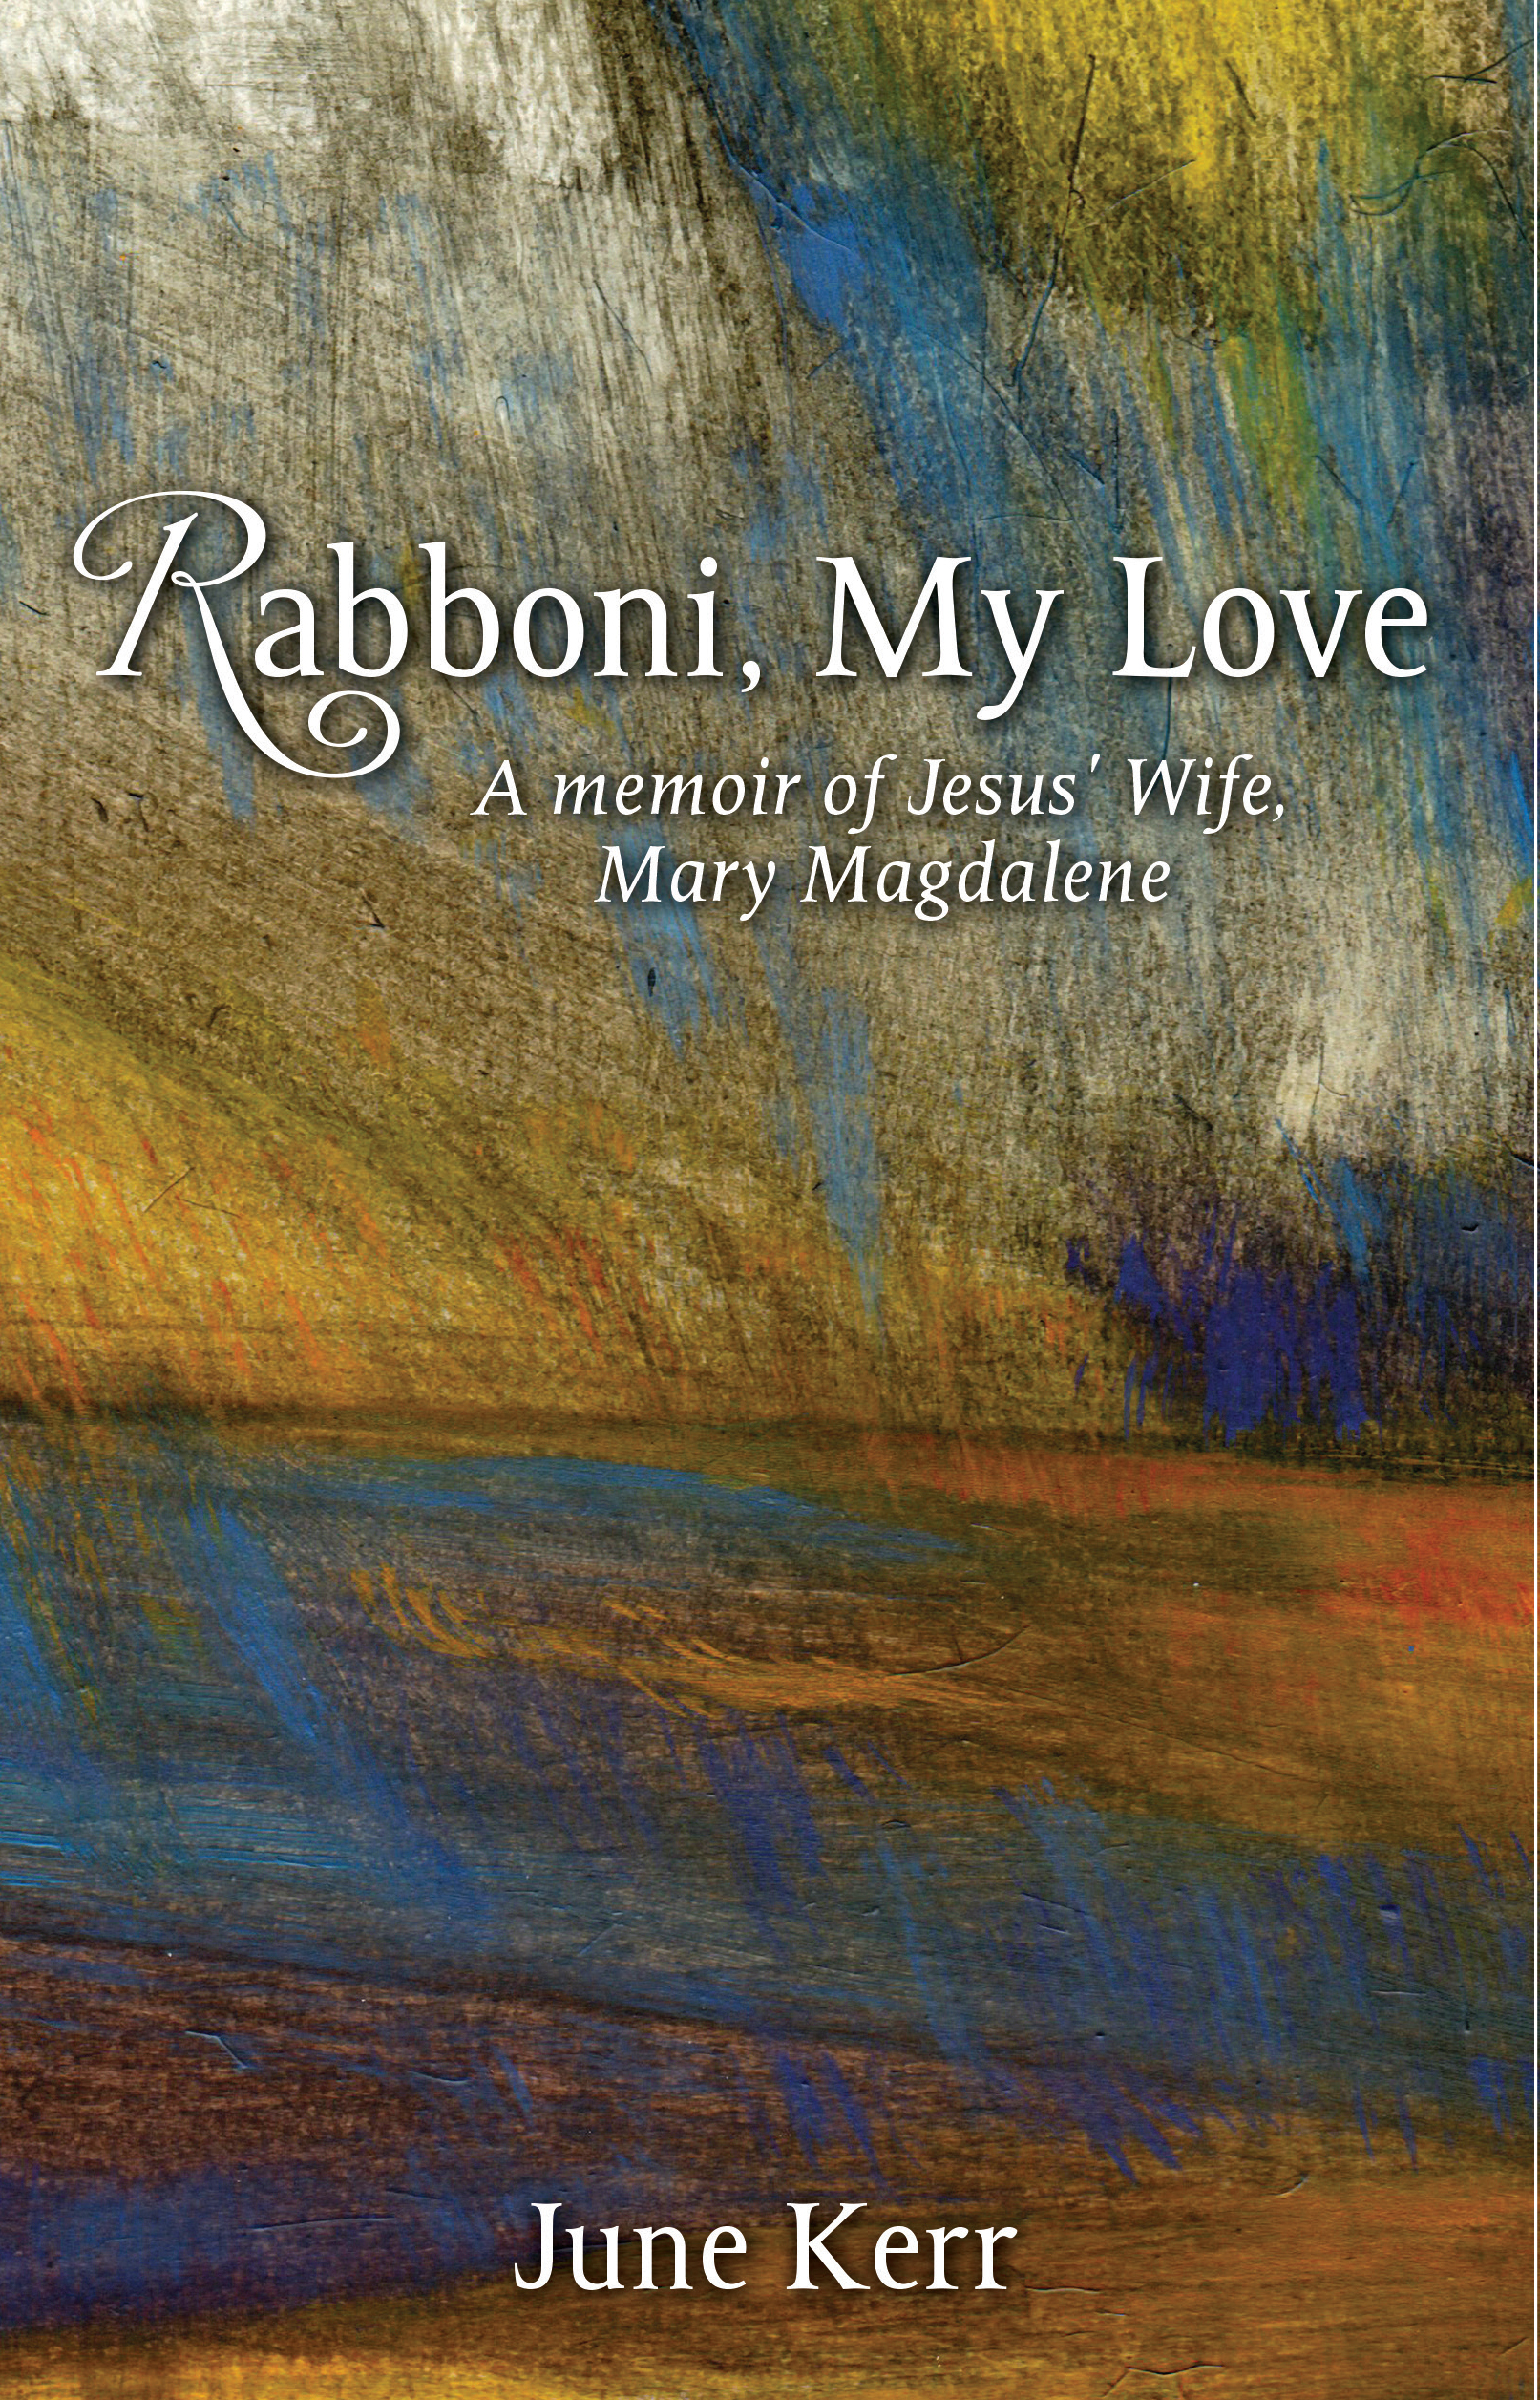 Rabboni, My Love: A Memoir of Jesus' Wife, Mary Magdalene By: June Kerr